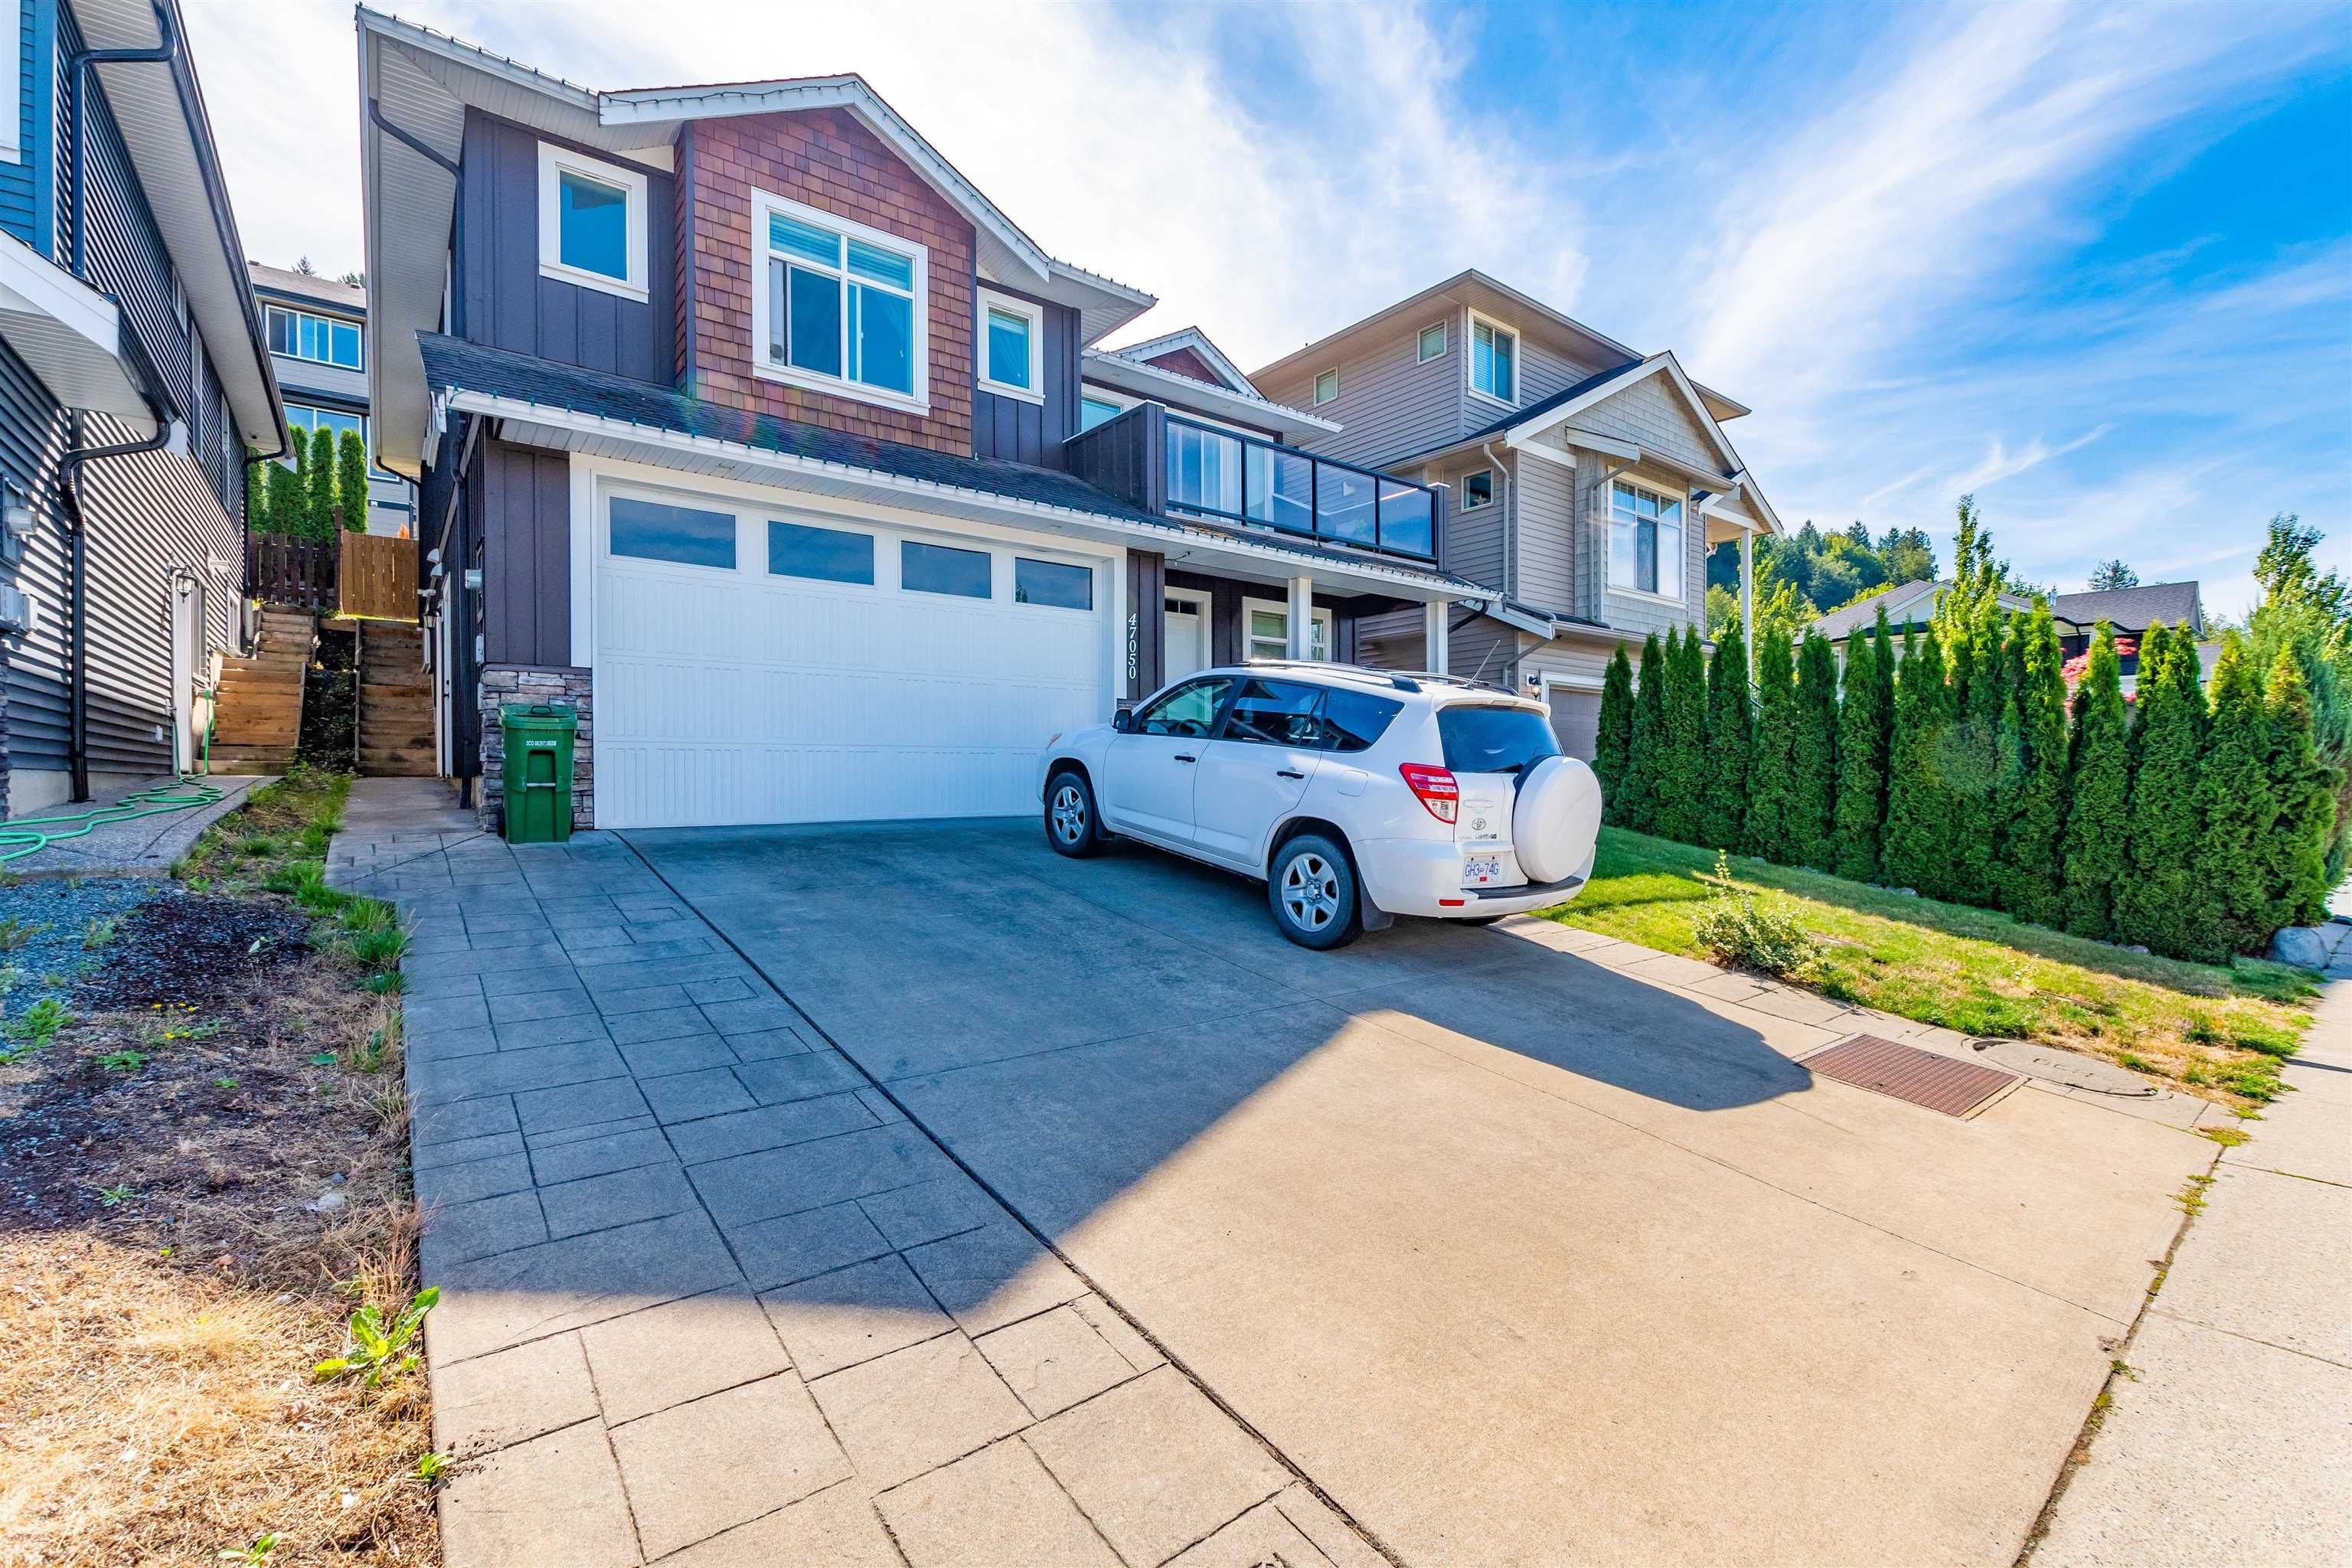 Main Photo: 47050 SYLVAN Drive in Chilliwack: Promontory House for sale (Sardis)  : MLS®# R2616122